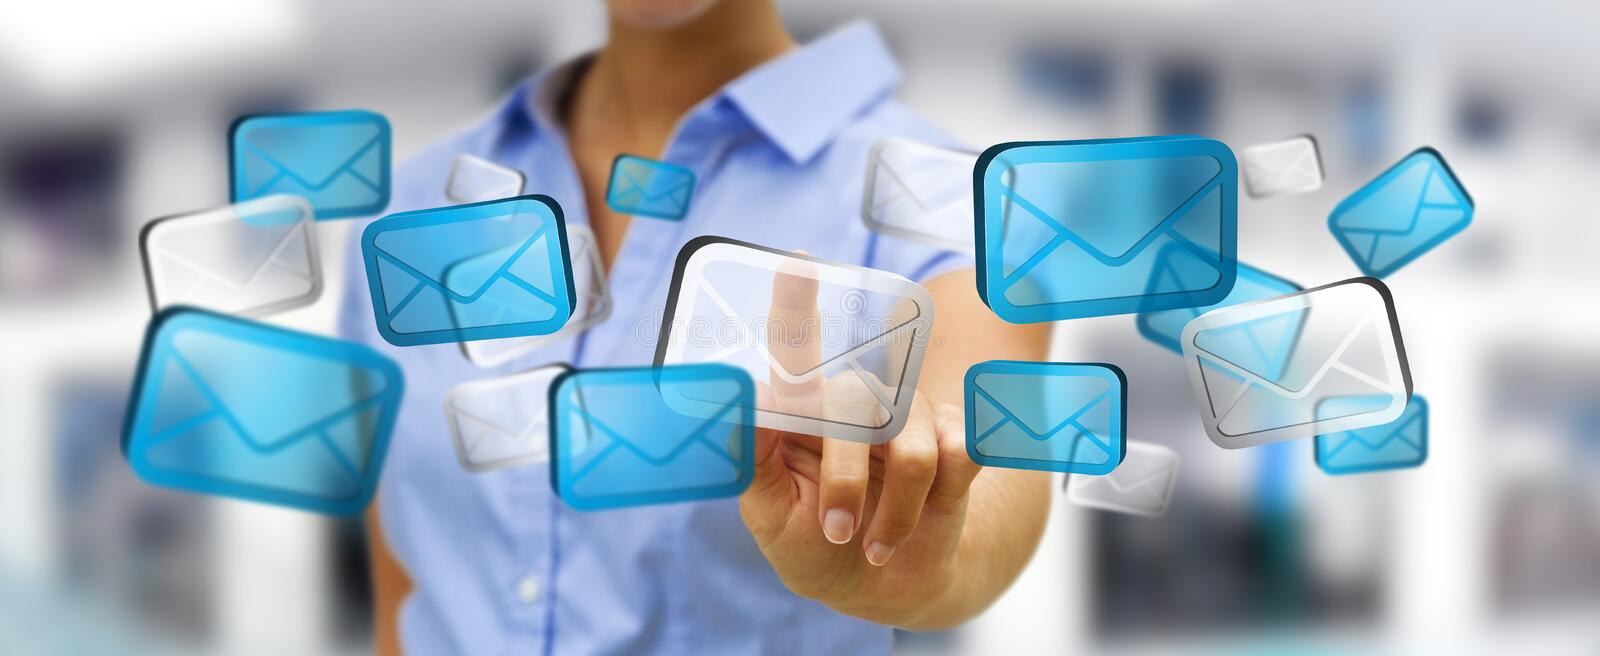 Businesswoman touching digital email icons '3D rendering' royalty free illustration